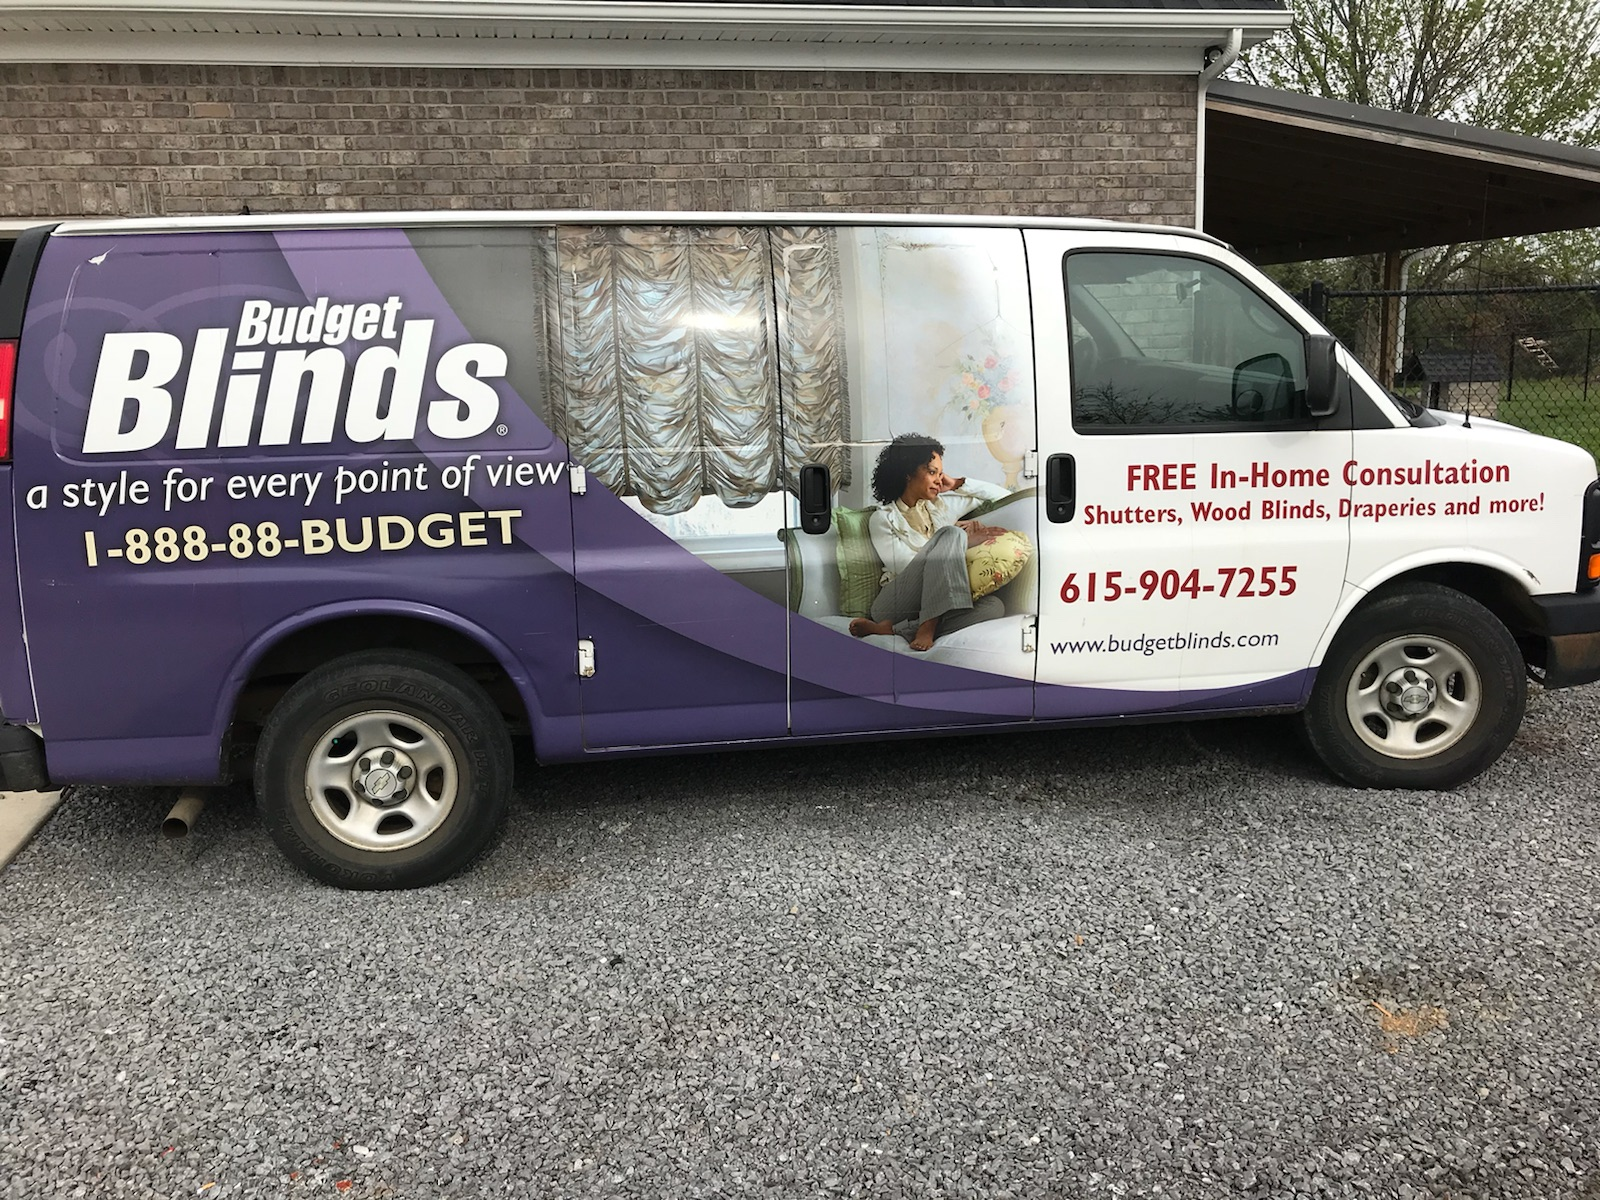 Budget Blinds of Shelbyville